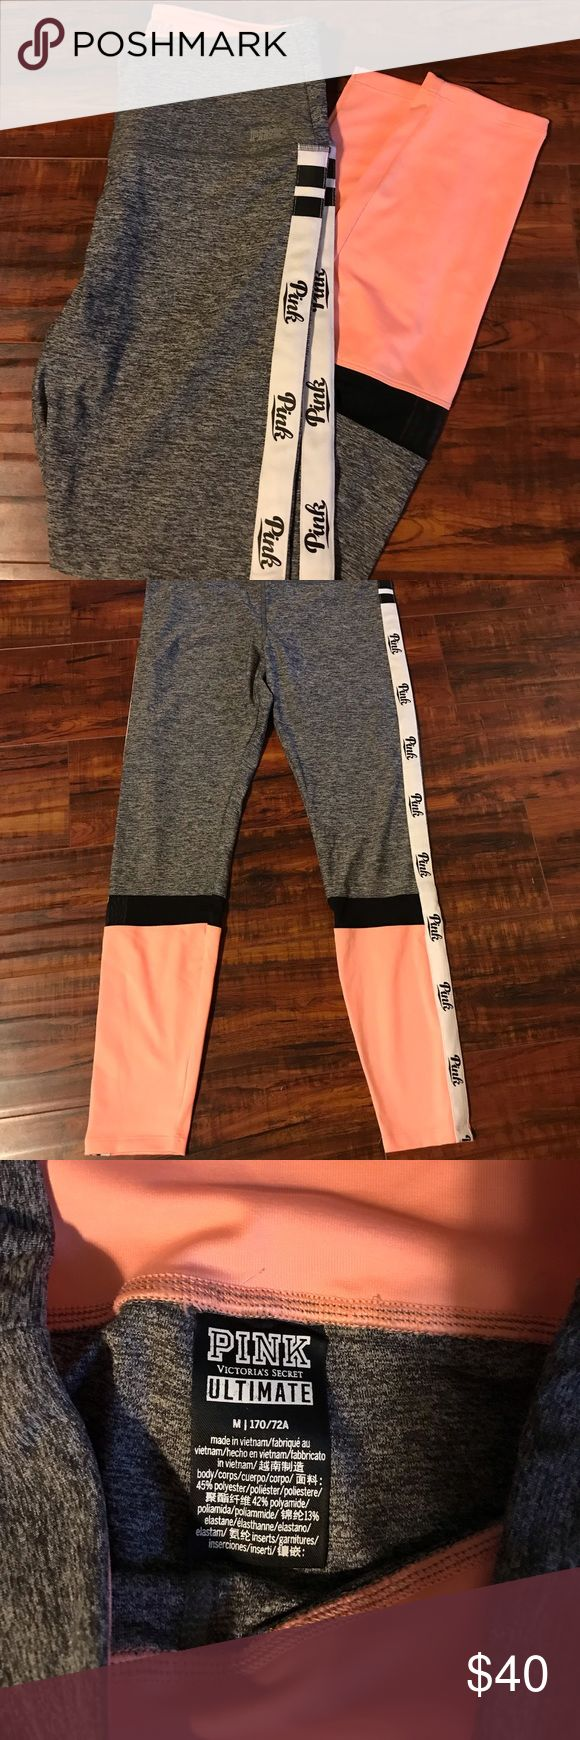 Vs pink ultimate leggings These are in excellent shape. I've only worn them a …